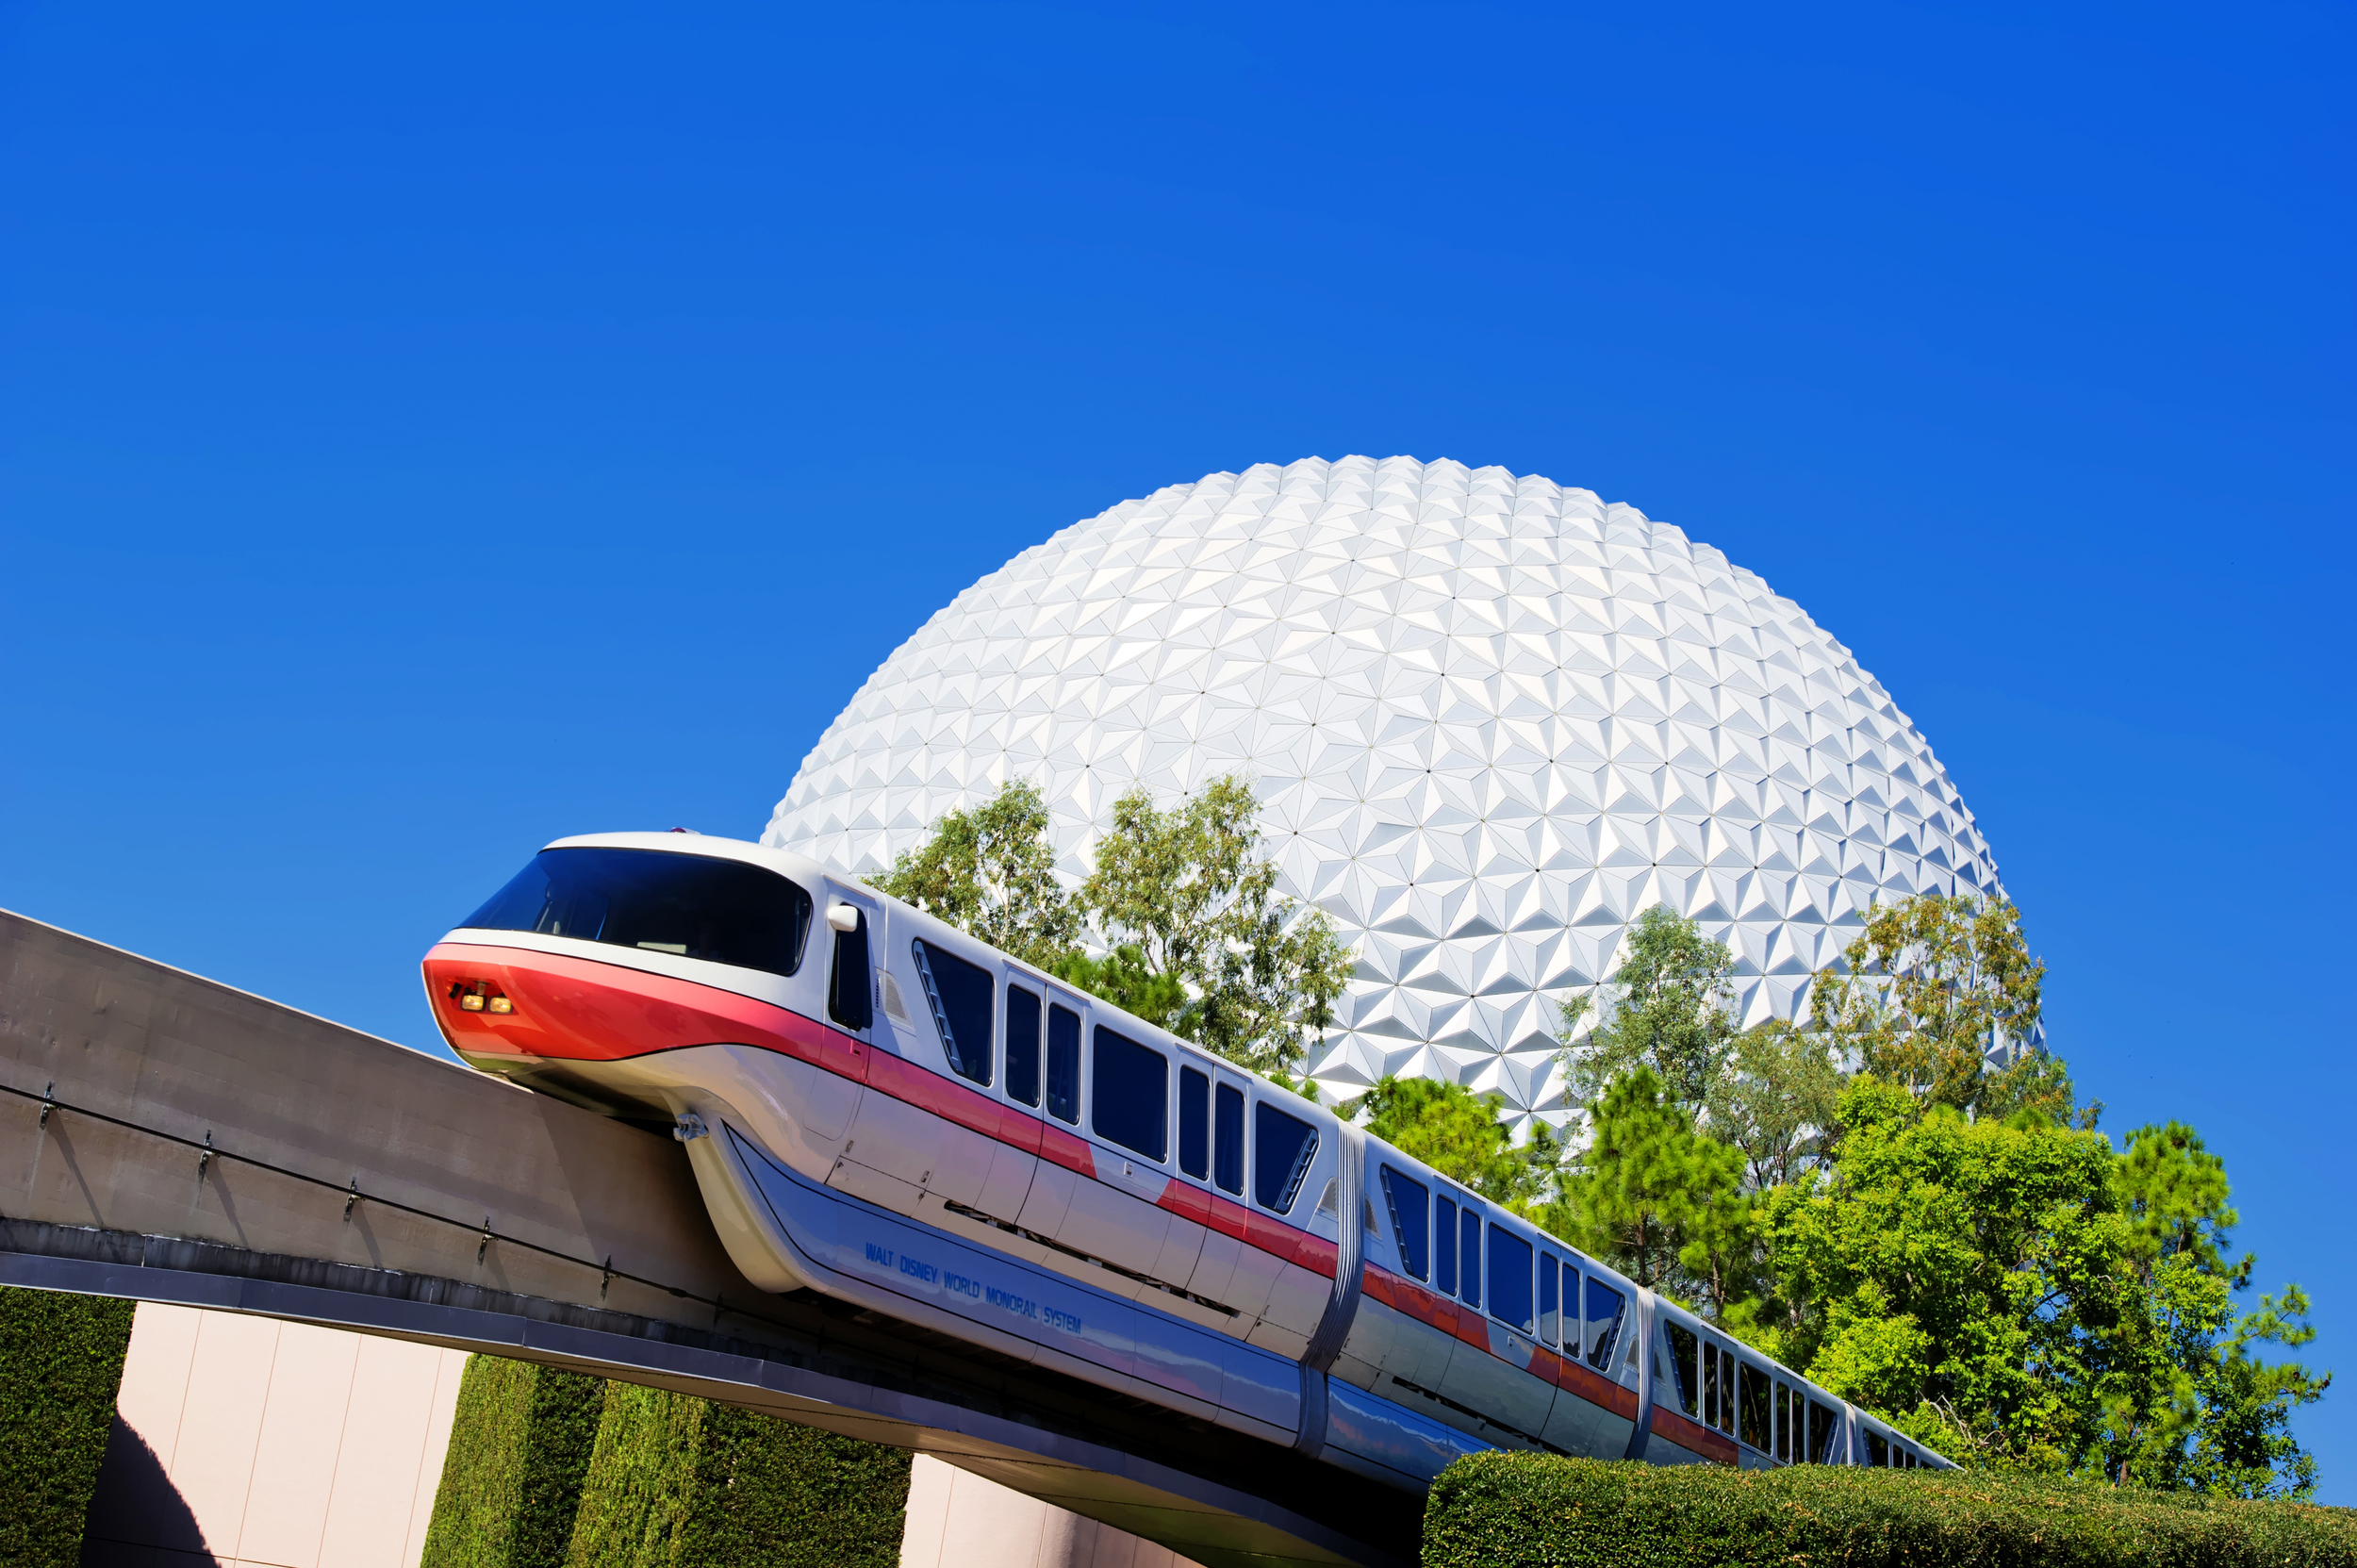 Monorail Tour of Epcot